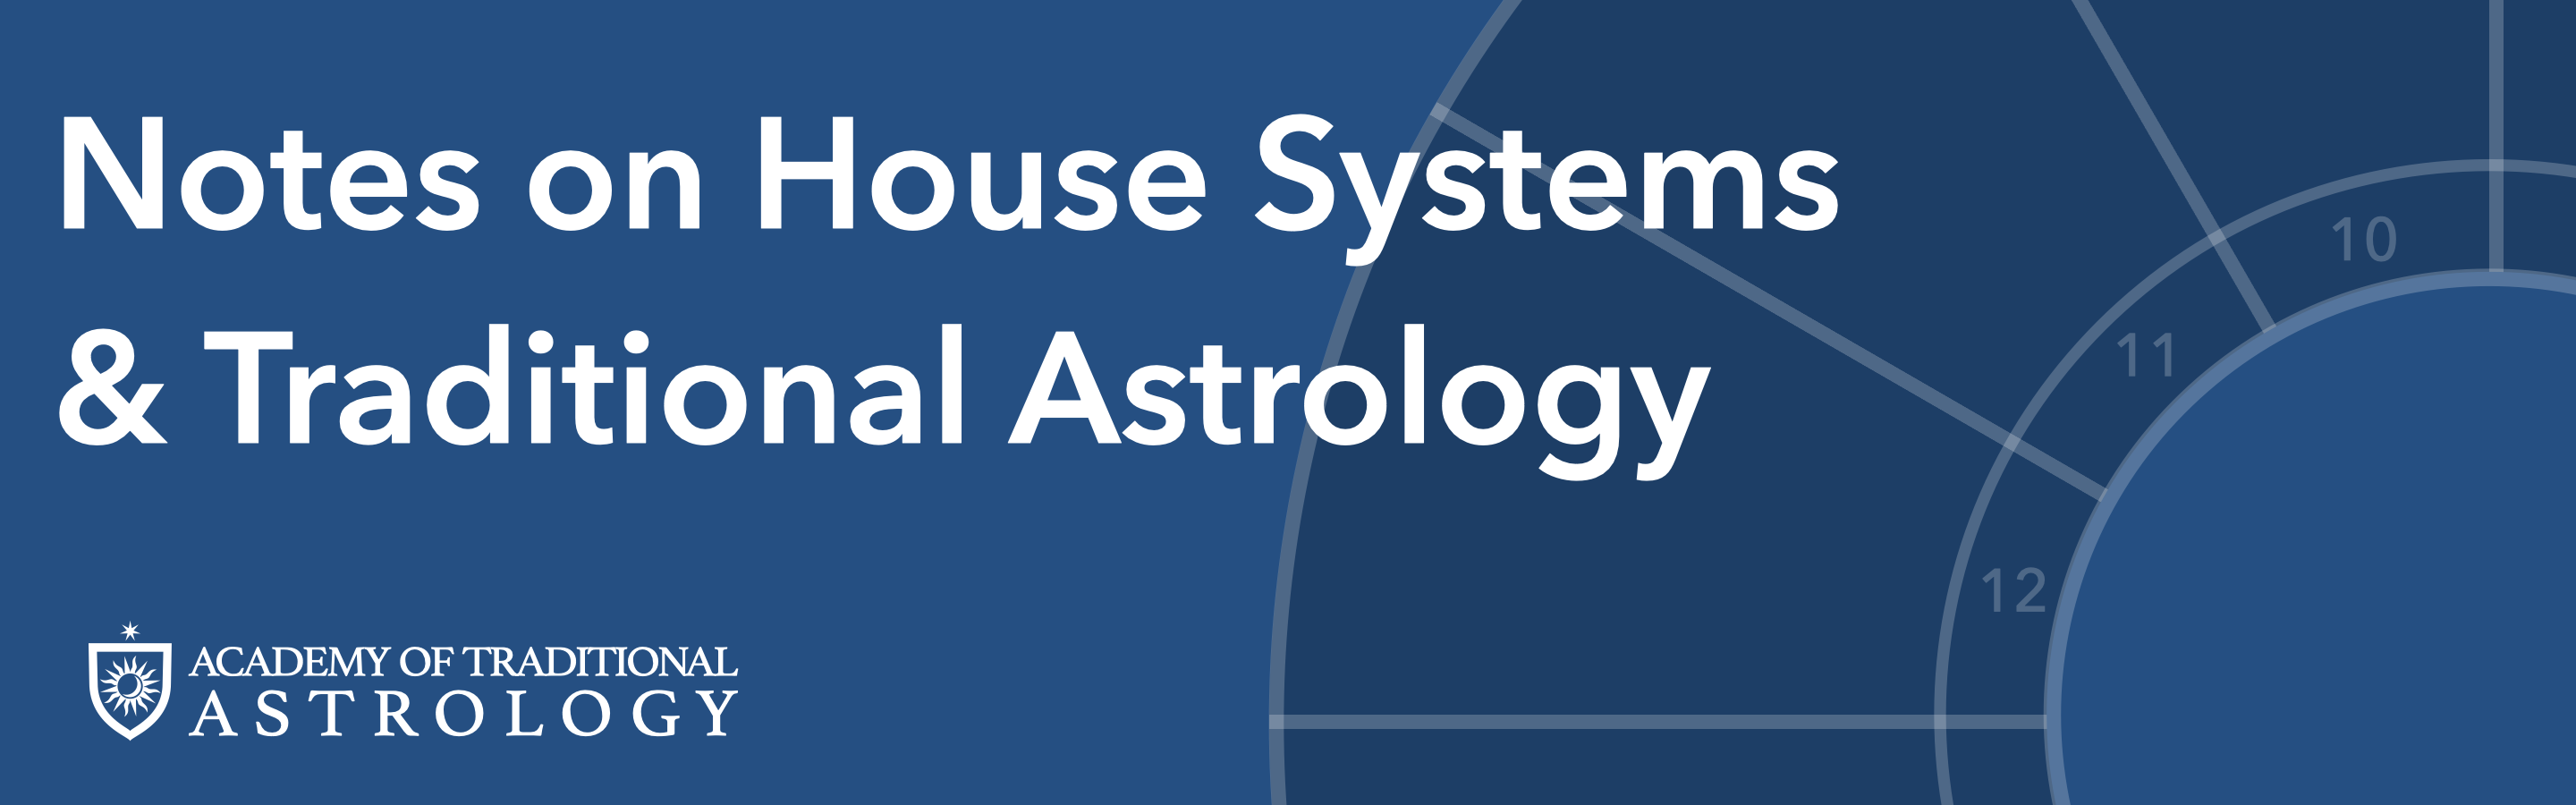 Notes On House Systems & Traditional Astrology